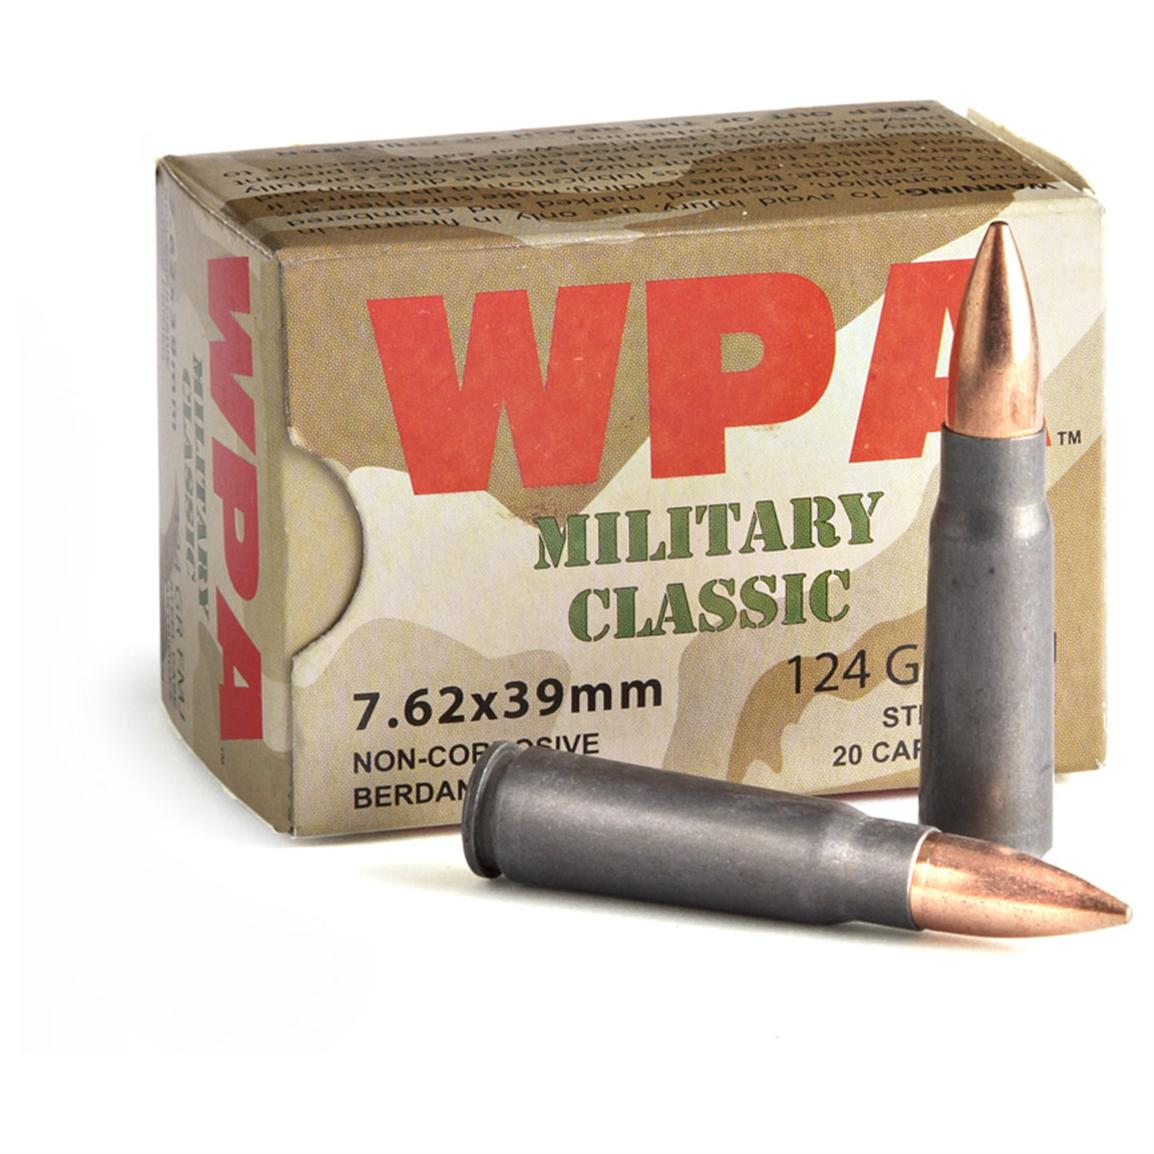 7.62x39mm, FMJ, 124 Grain, 1,000 Rounds